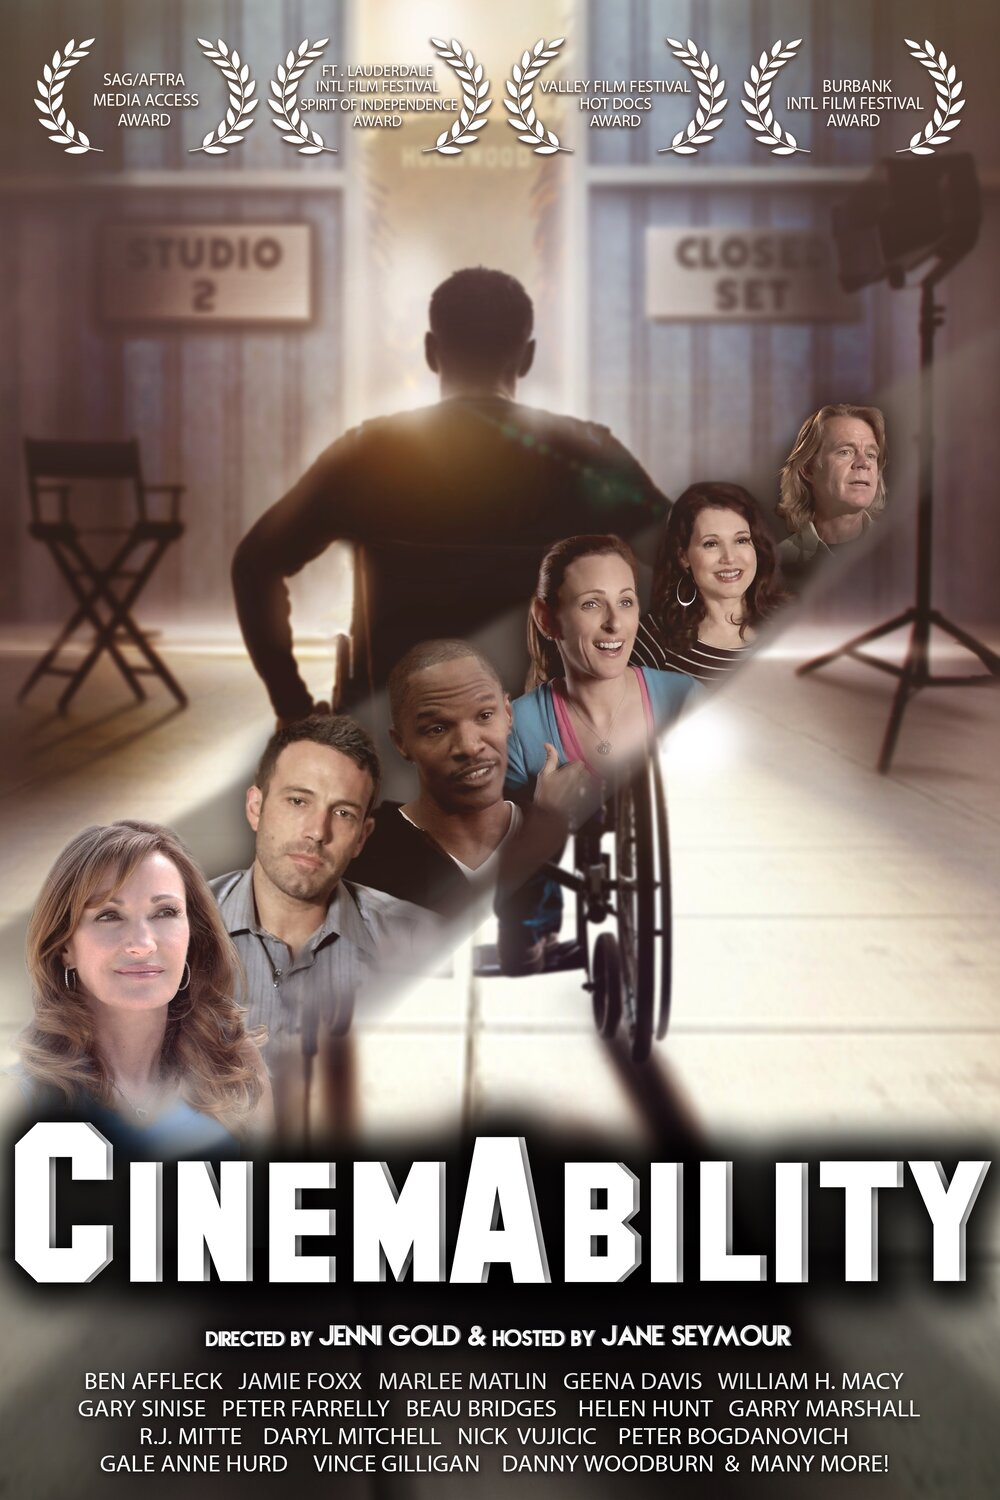 CinemAbility